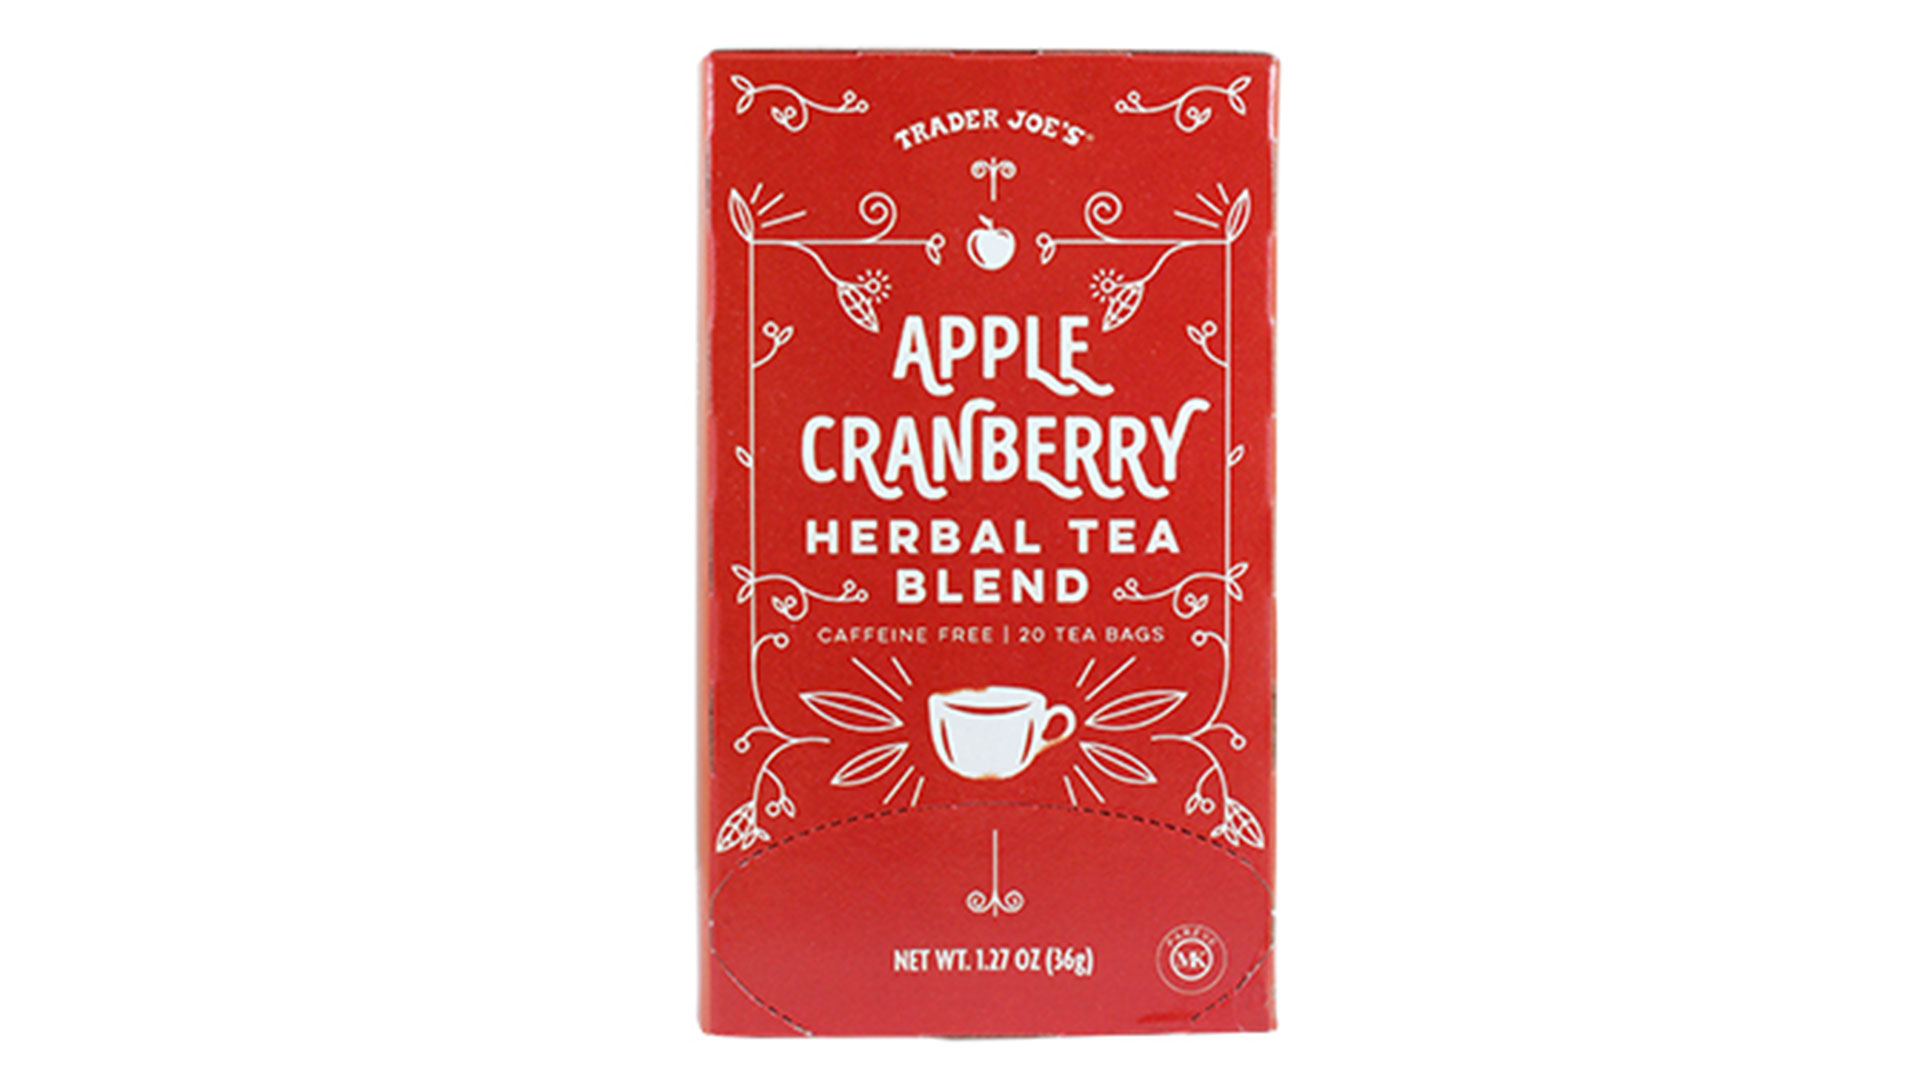 Apple Cranberry Herbal Tea Blend